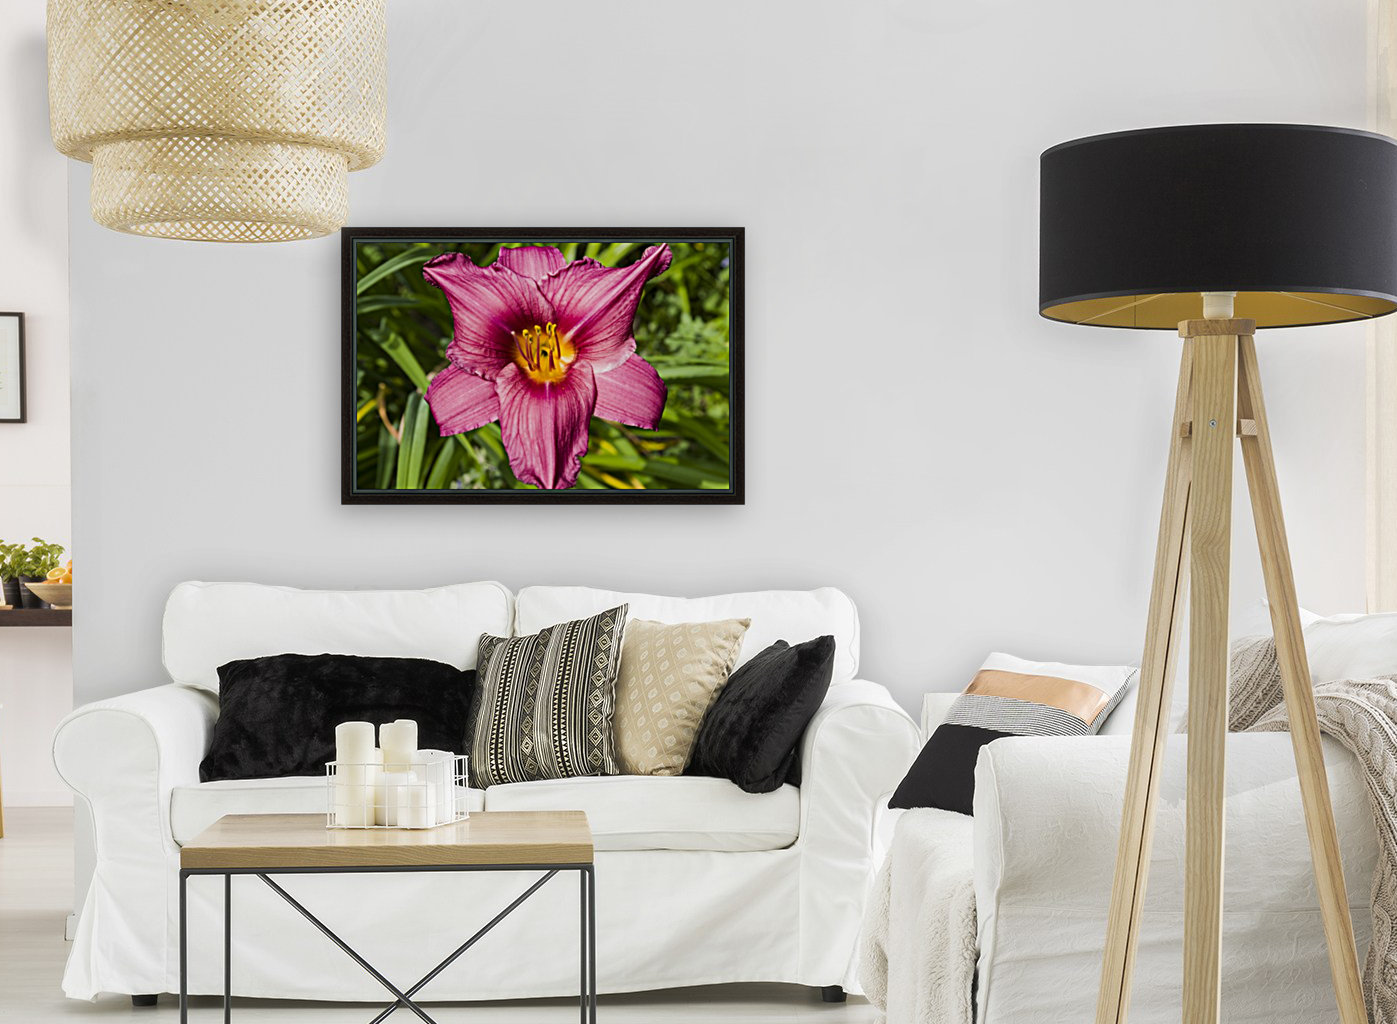 Purple Stella Doro Day Lily Flowers 2 with Floating Frame